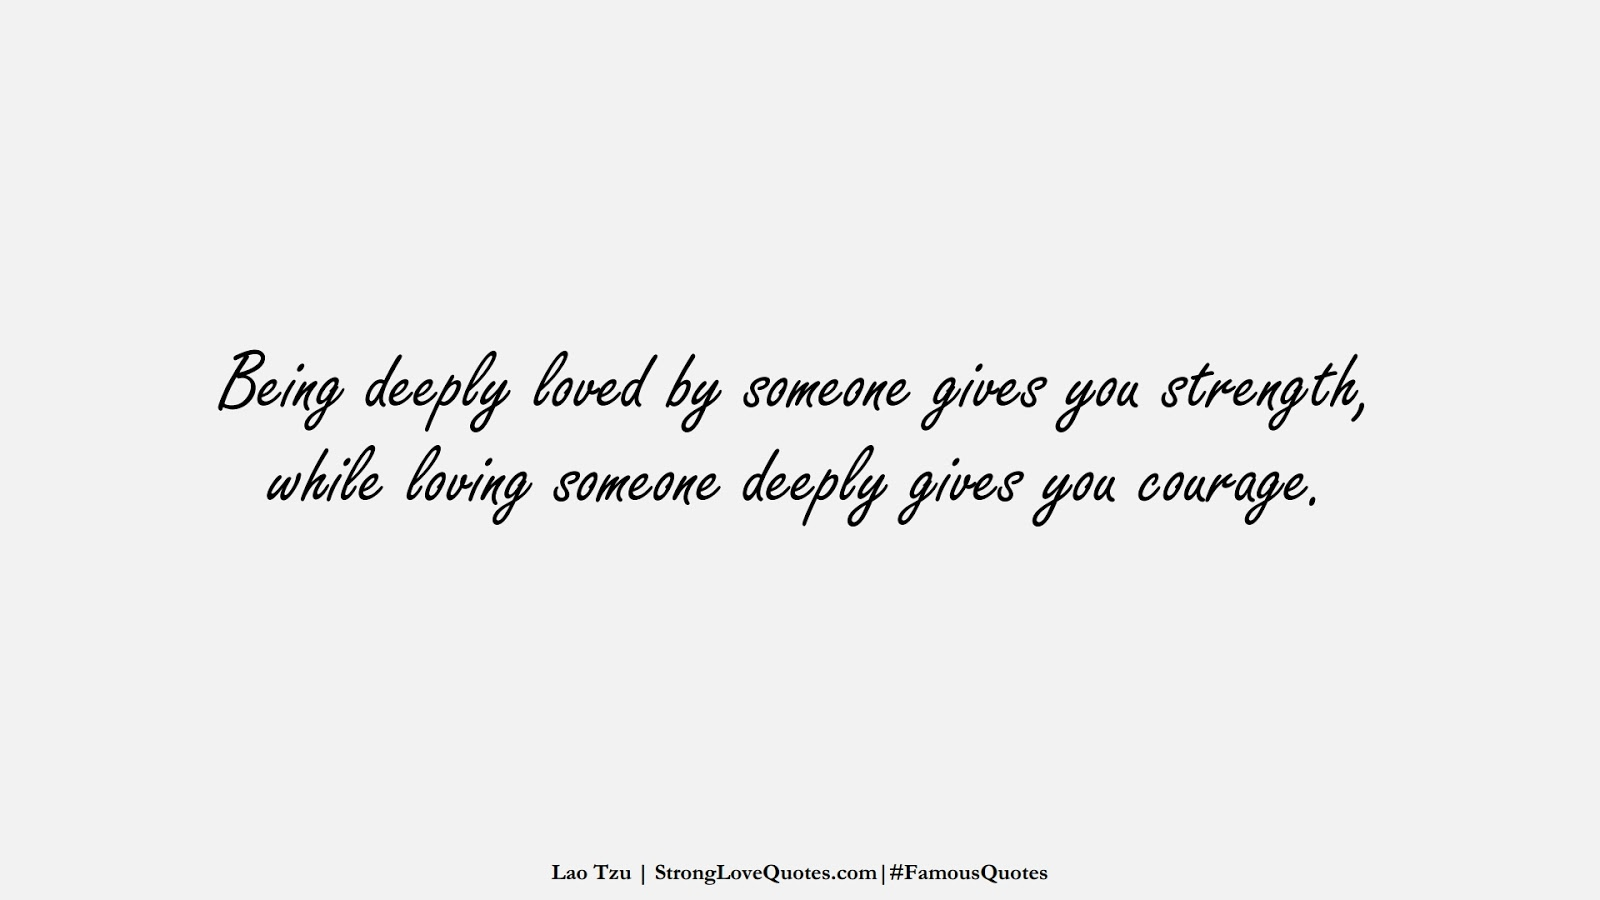 Being deeply loved by someone gives you strength, while loving someone deeply gives you courage. (Lao Tzu);  #FamousQuotes